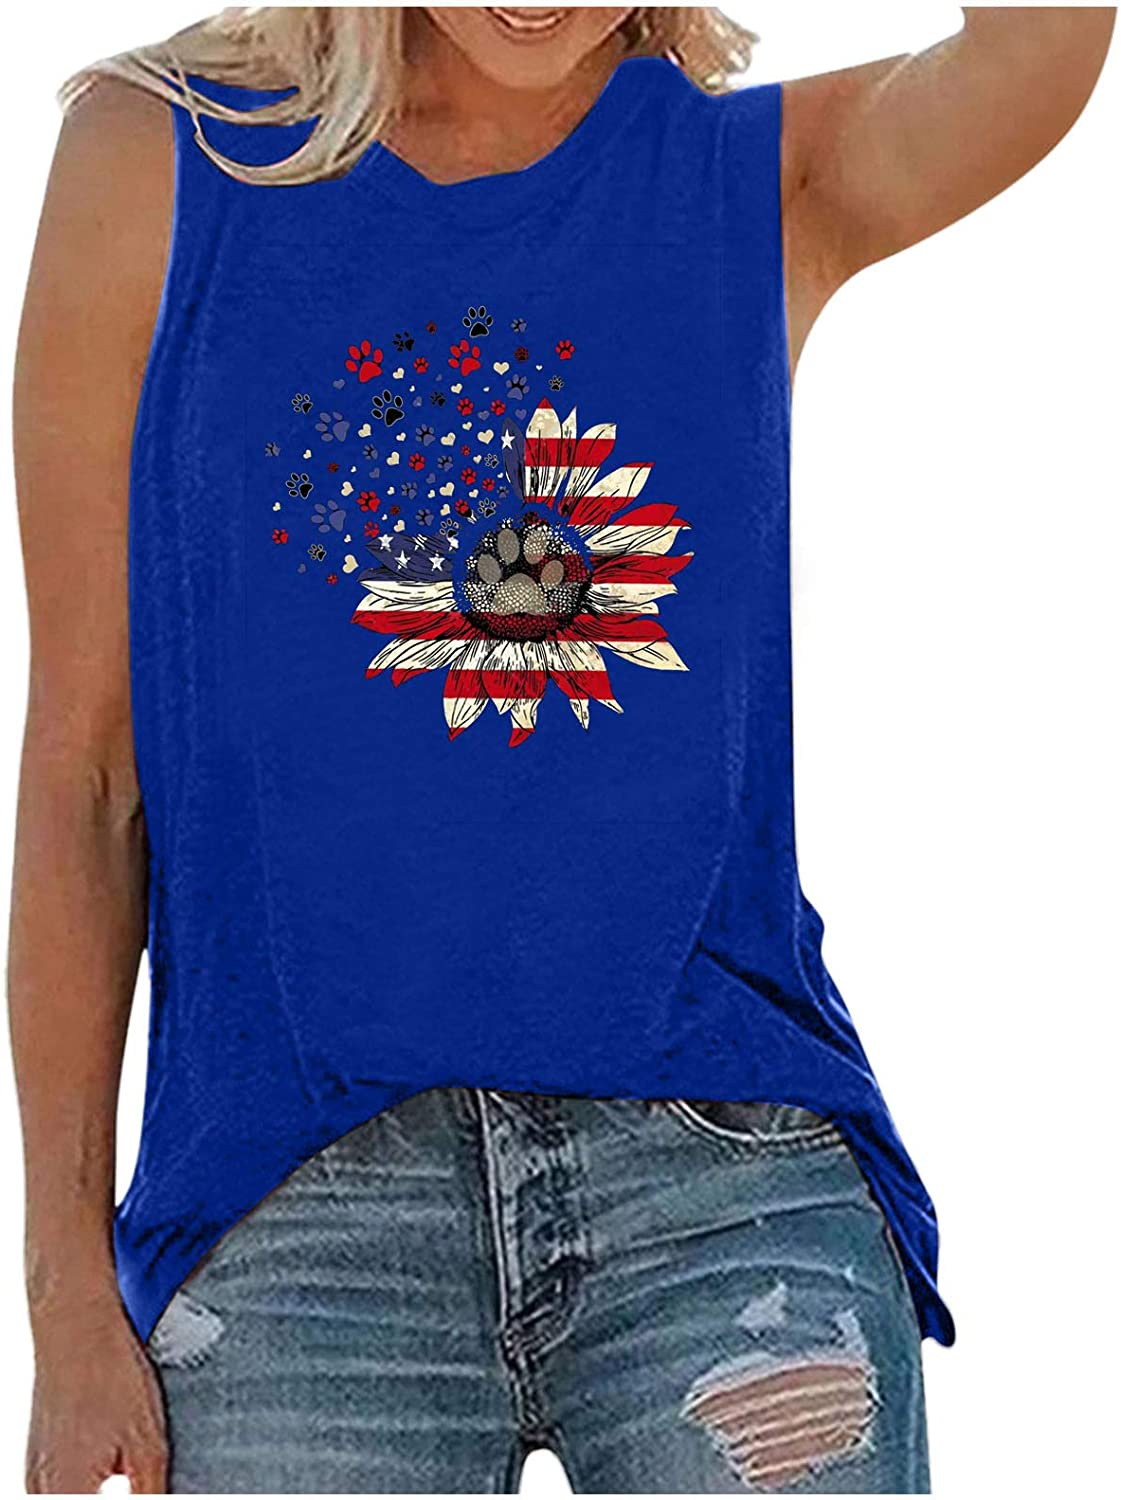 XUETON Sleeveless Tank Top for Women American Flag Sunflower Printed Graphic Blouse Casual Loose Fitting Shirts